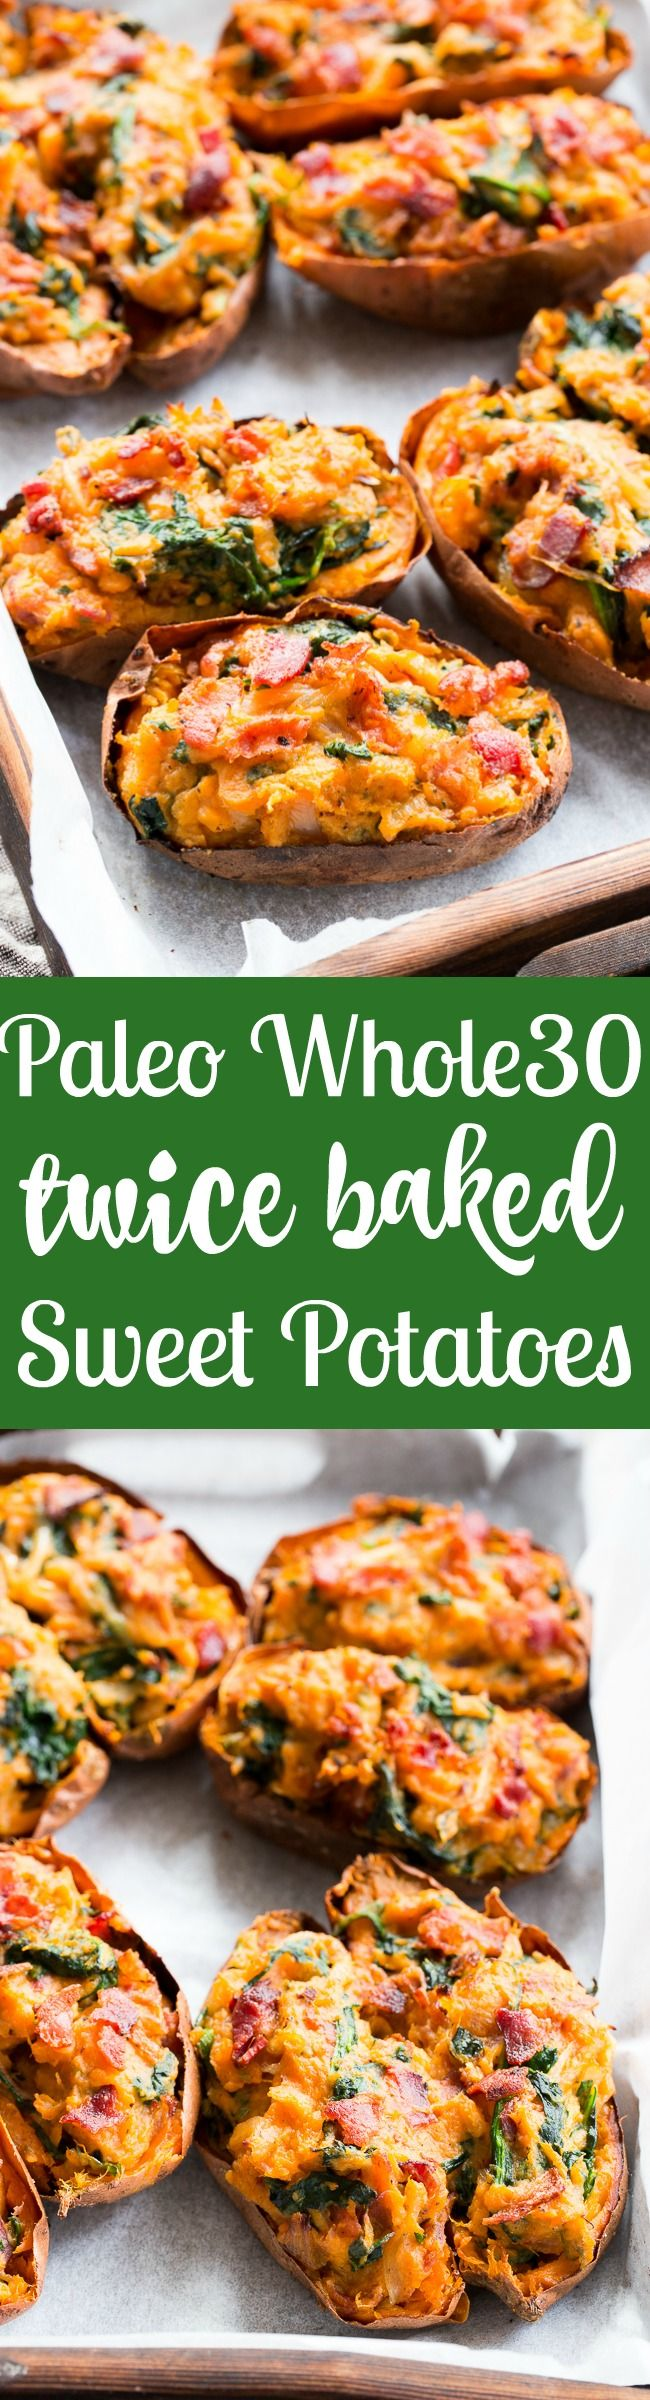 These twice baked sweet potatoes can be served as a healthy meal or side dish - your choice!  They're packed with a savory mixture of caramelized onions, spinach and bacon and baked to perfection.  They're family approved, Paleo, Whole30 compliant, and dairy-free.